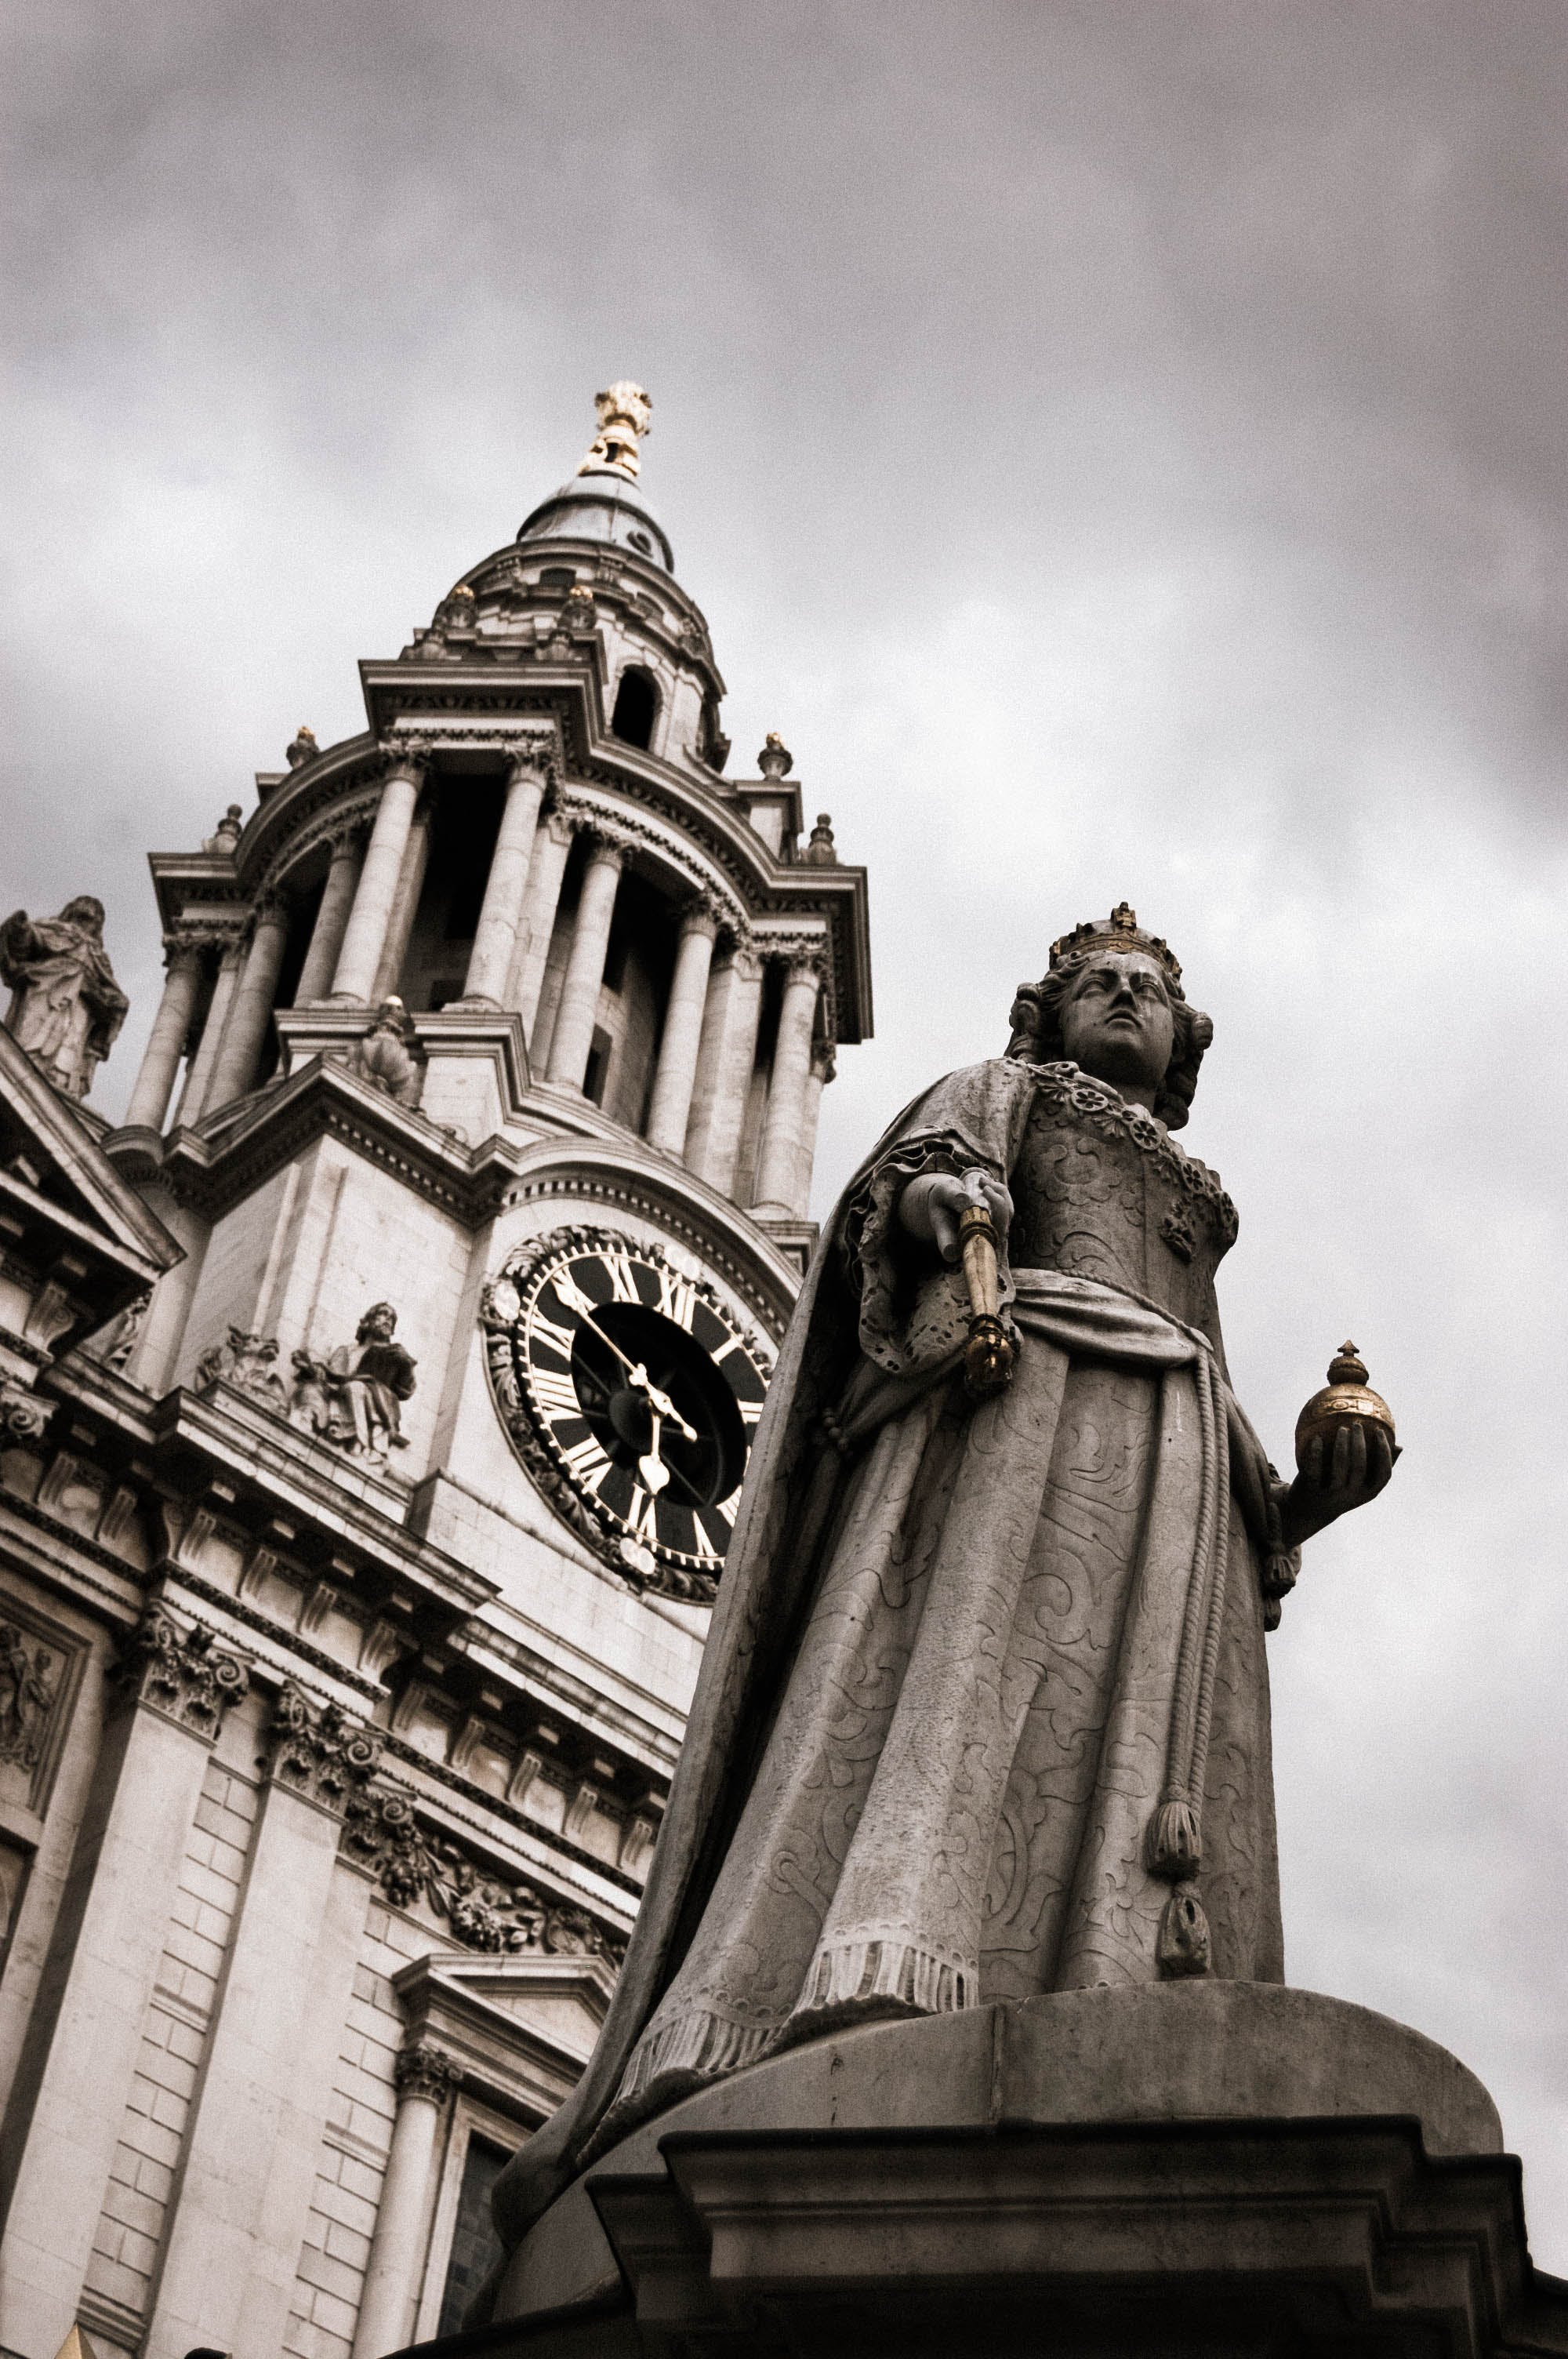 Grayscale Photography of Church Statue